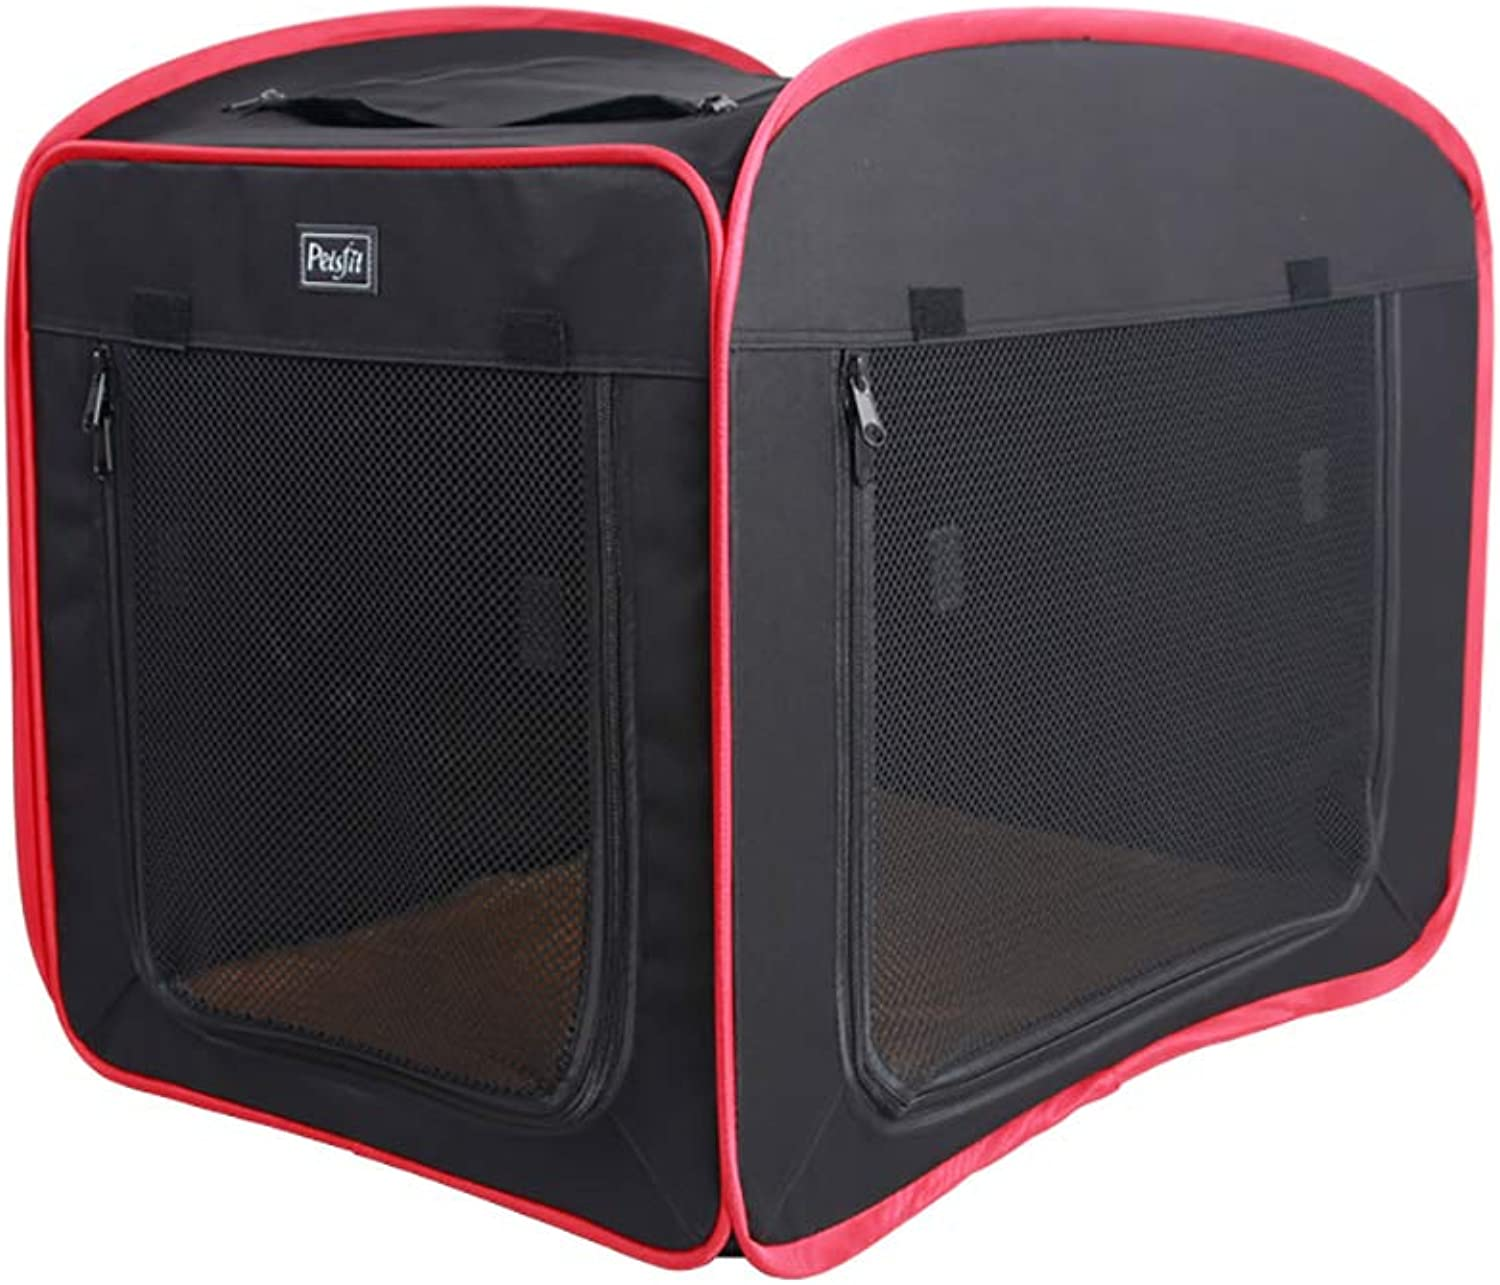 HEISHOP Dog tents, dog kennels, cat kennels, washable, carborne dog and cat supplies for all seasons,Black,S